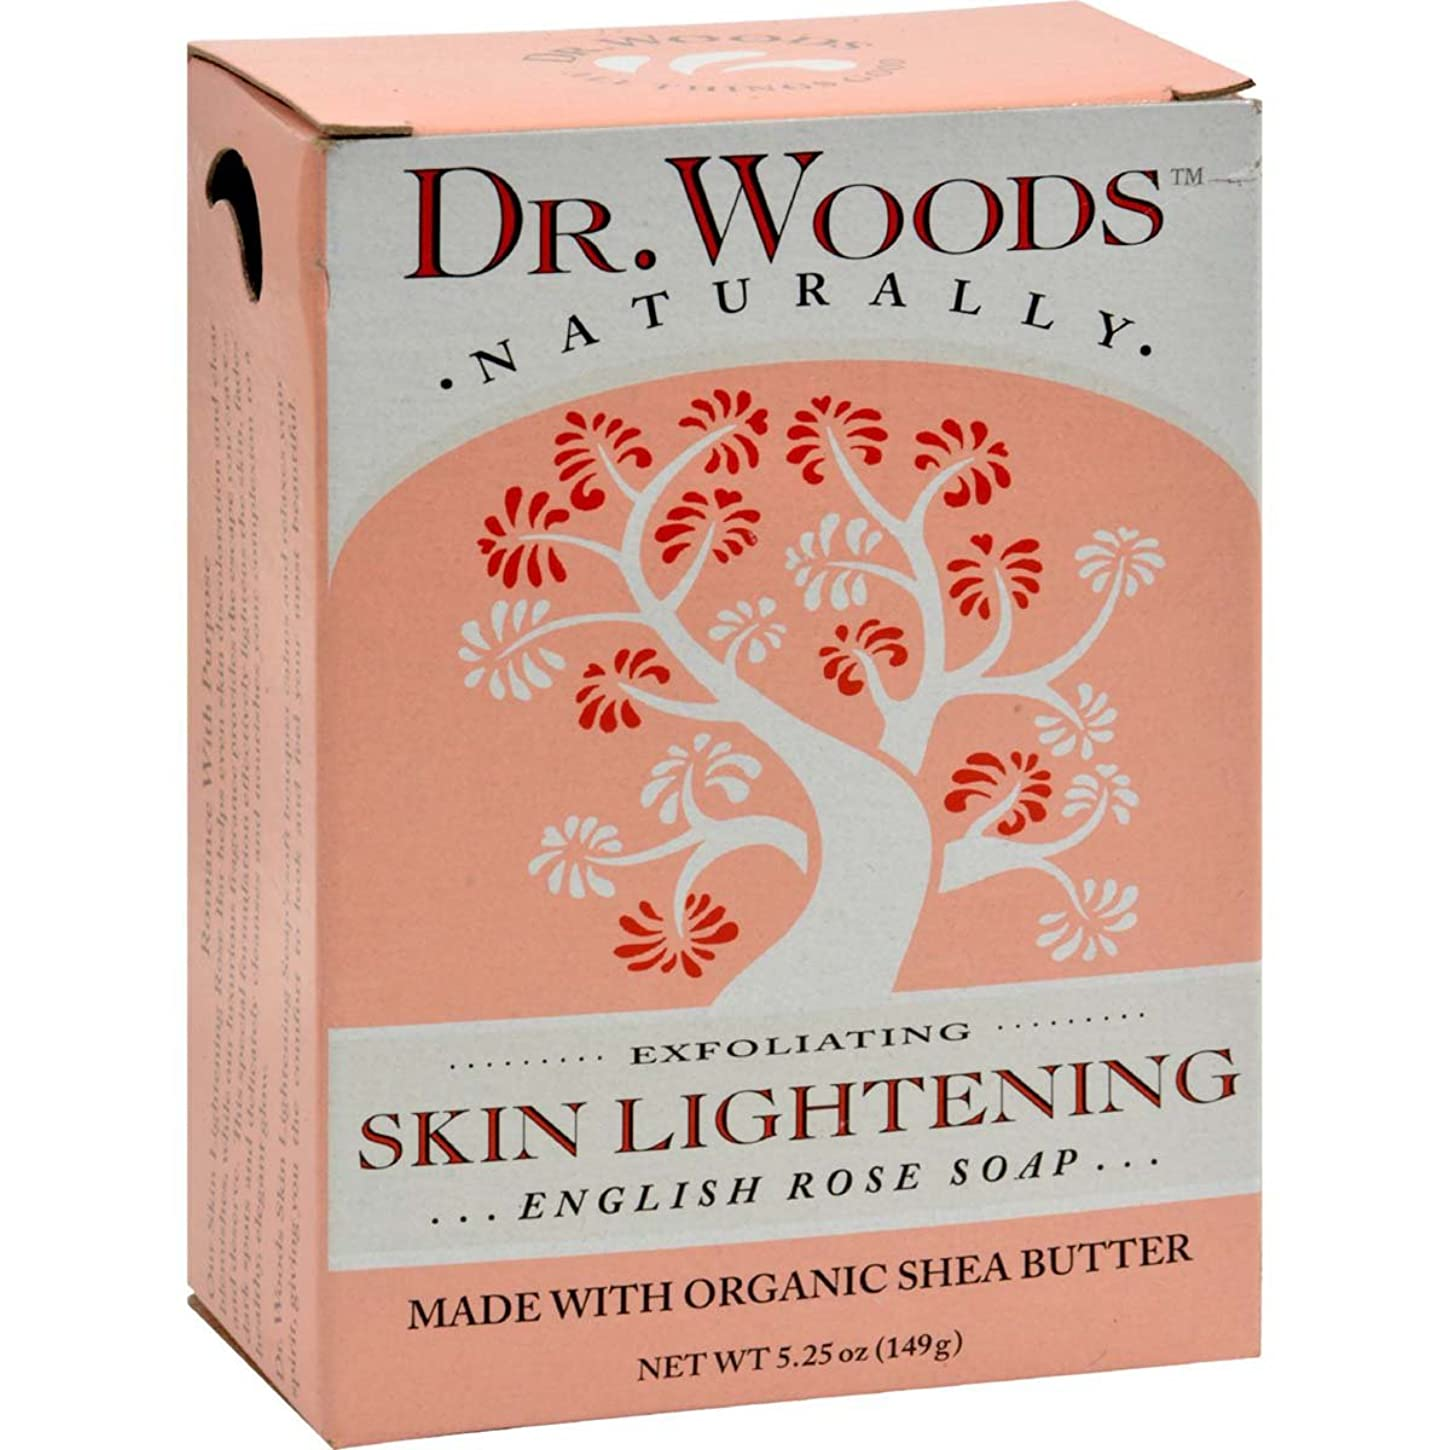 端個性休憩するDr. Woods, English Rose Soap, Skin Lightening, 5.25 oz (149 g)